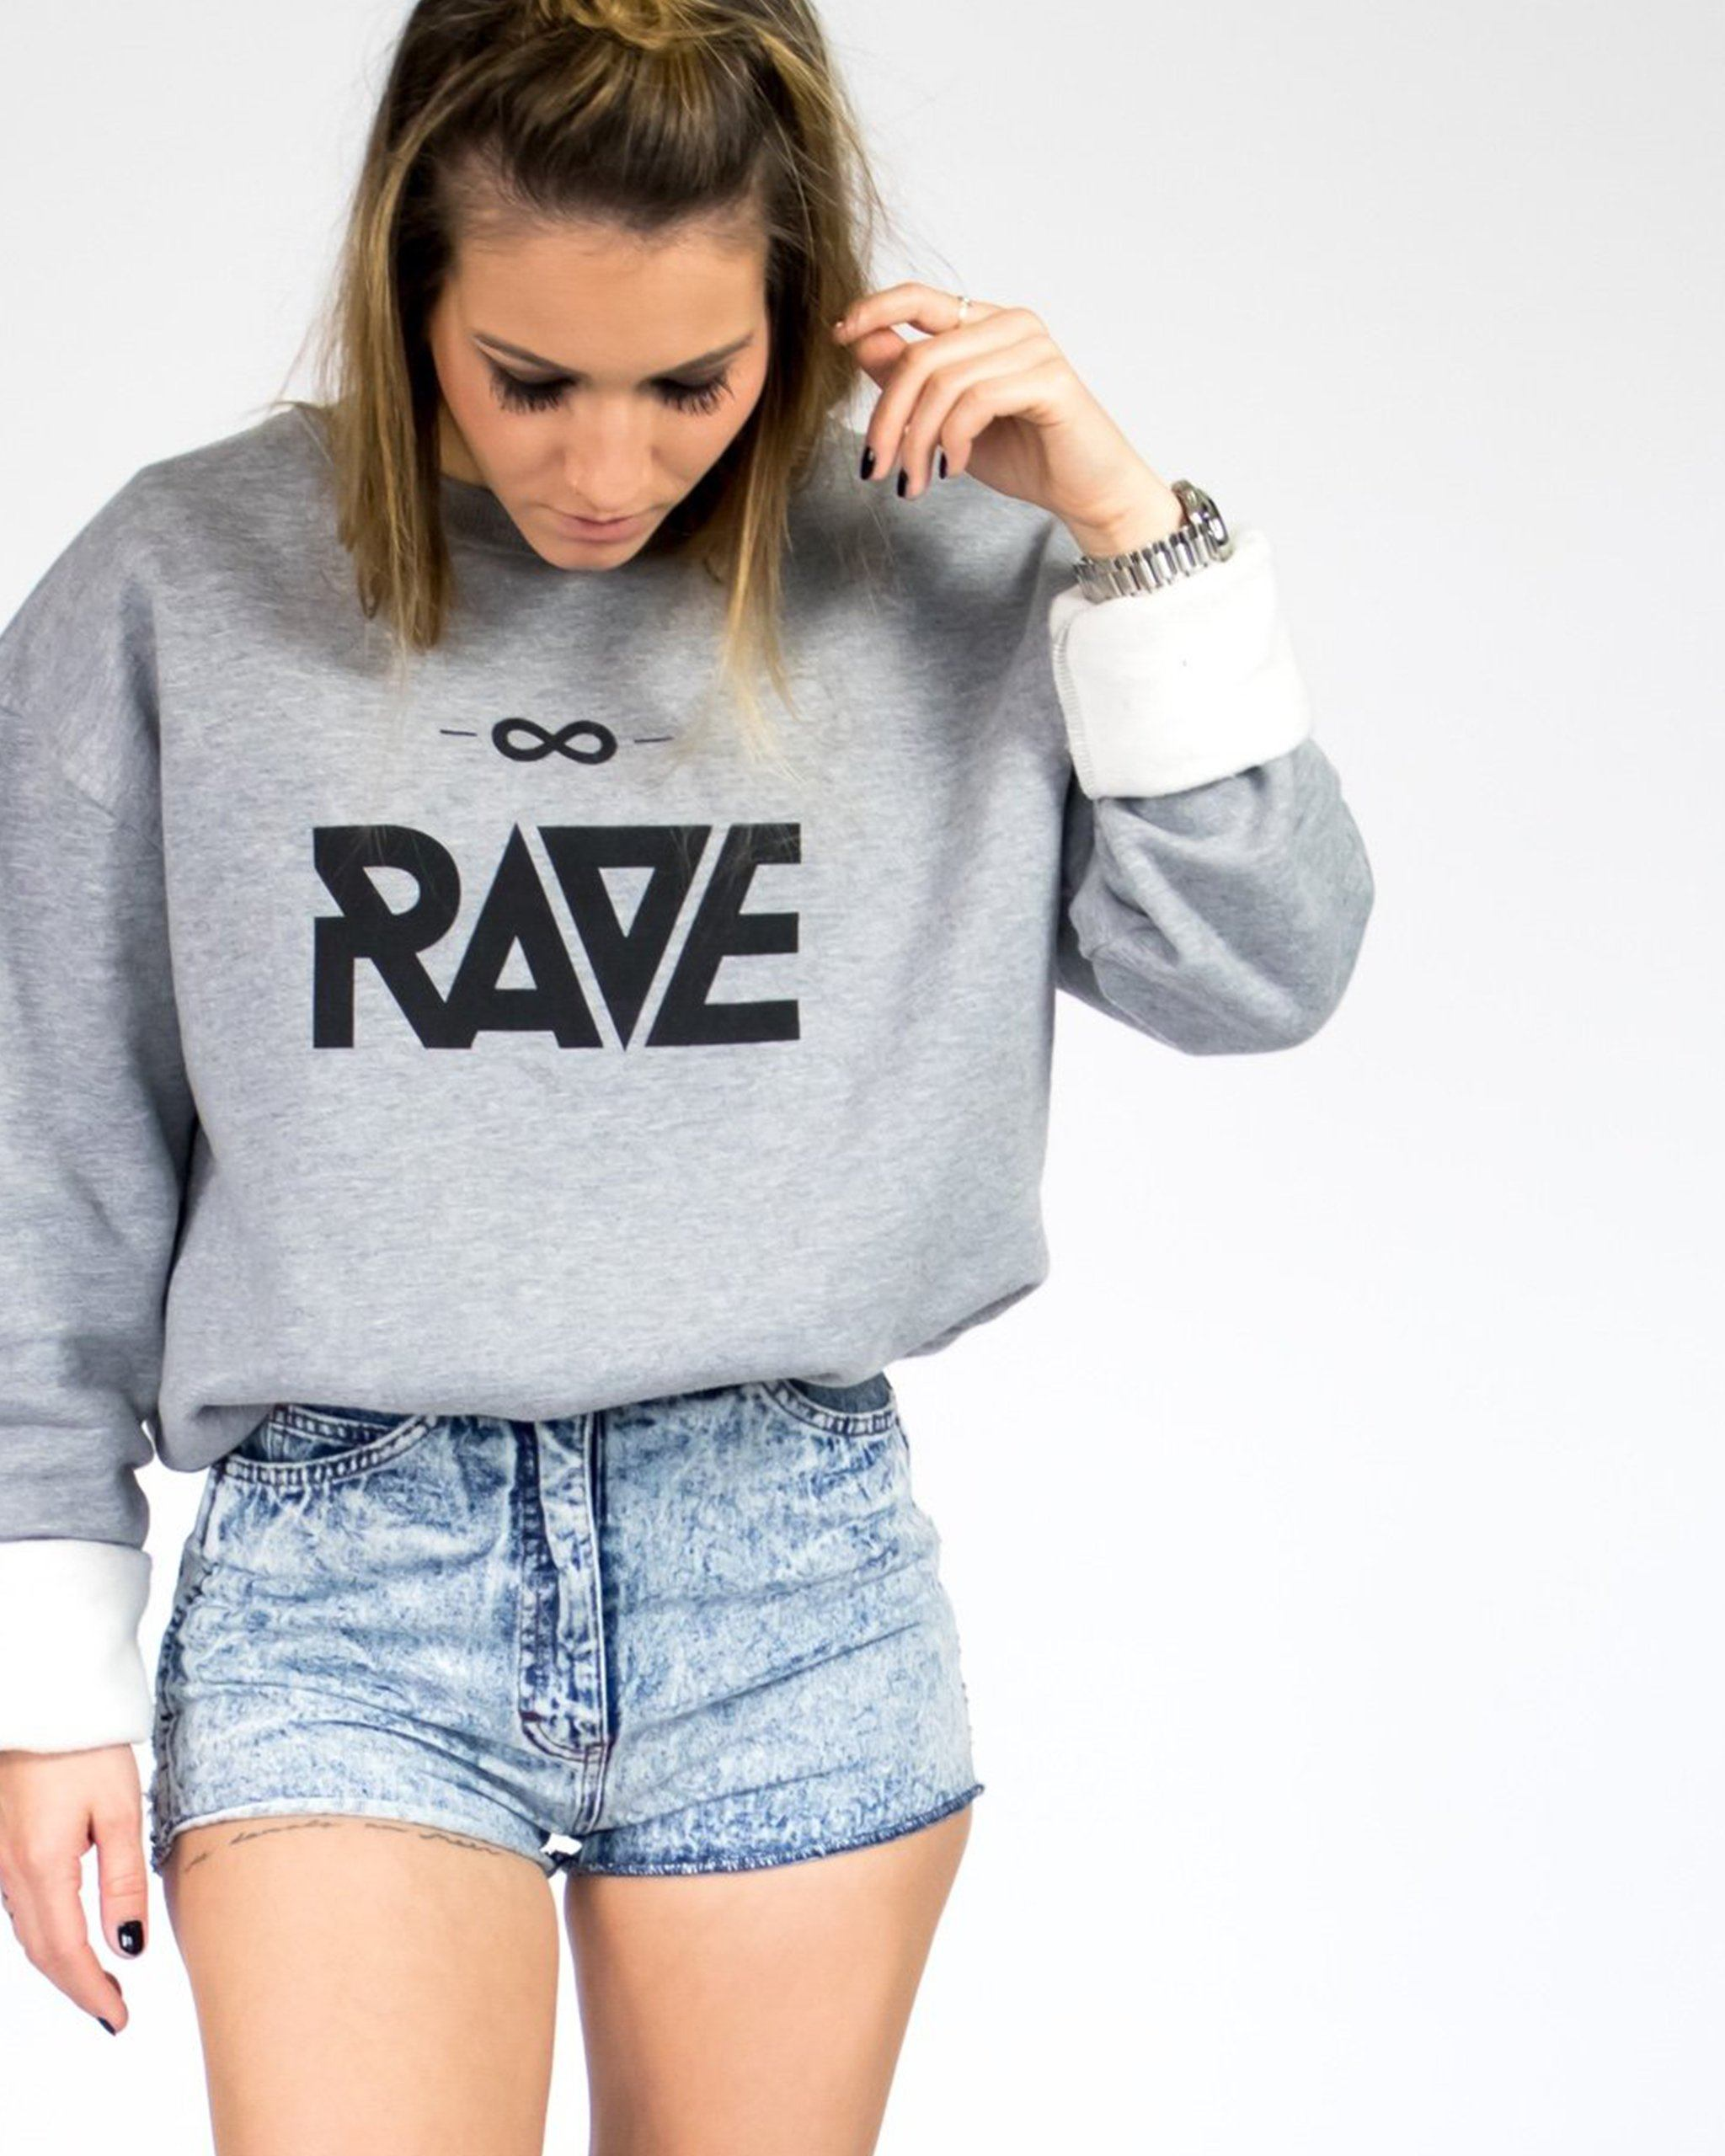 RAVE Crewneck in light gray for women by RAVE Clothing